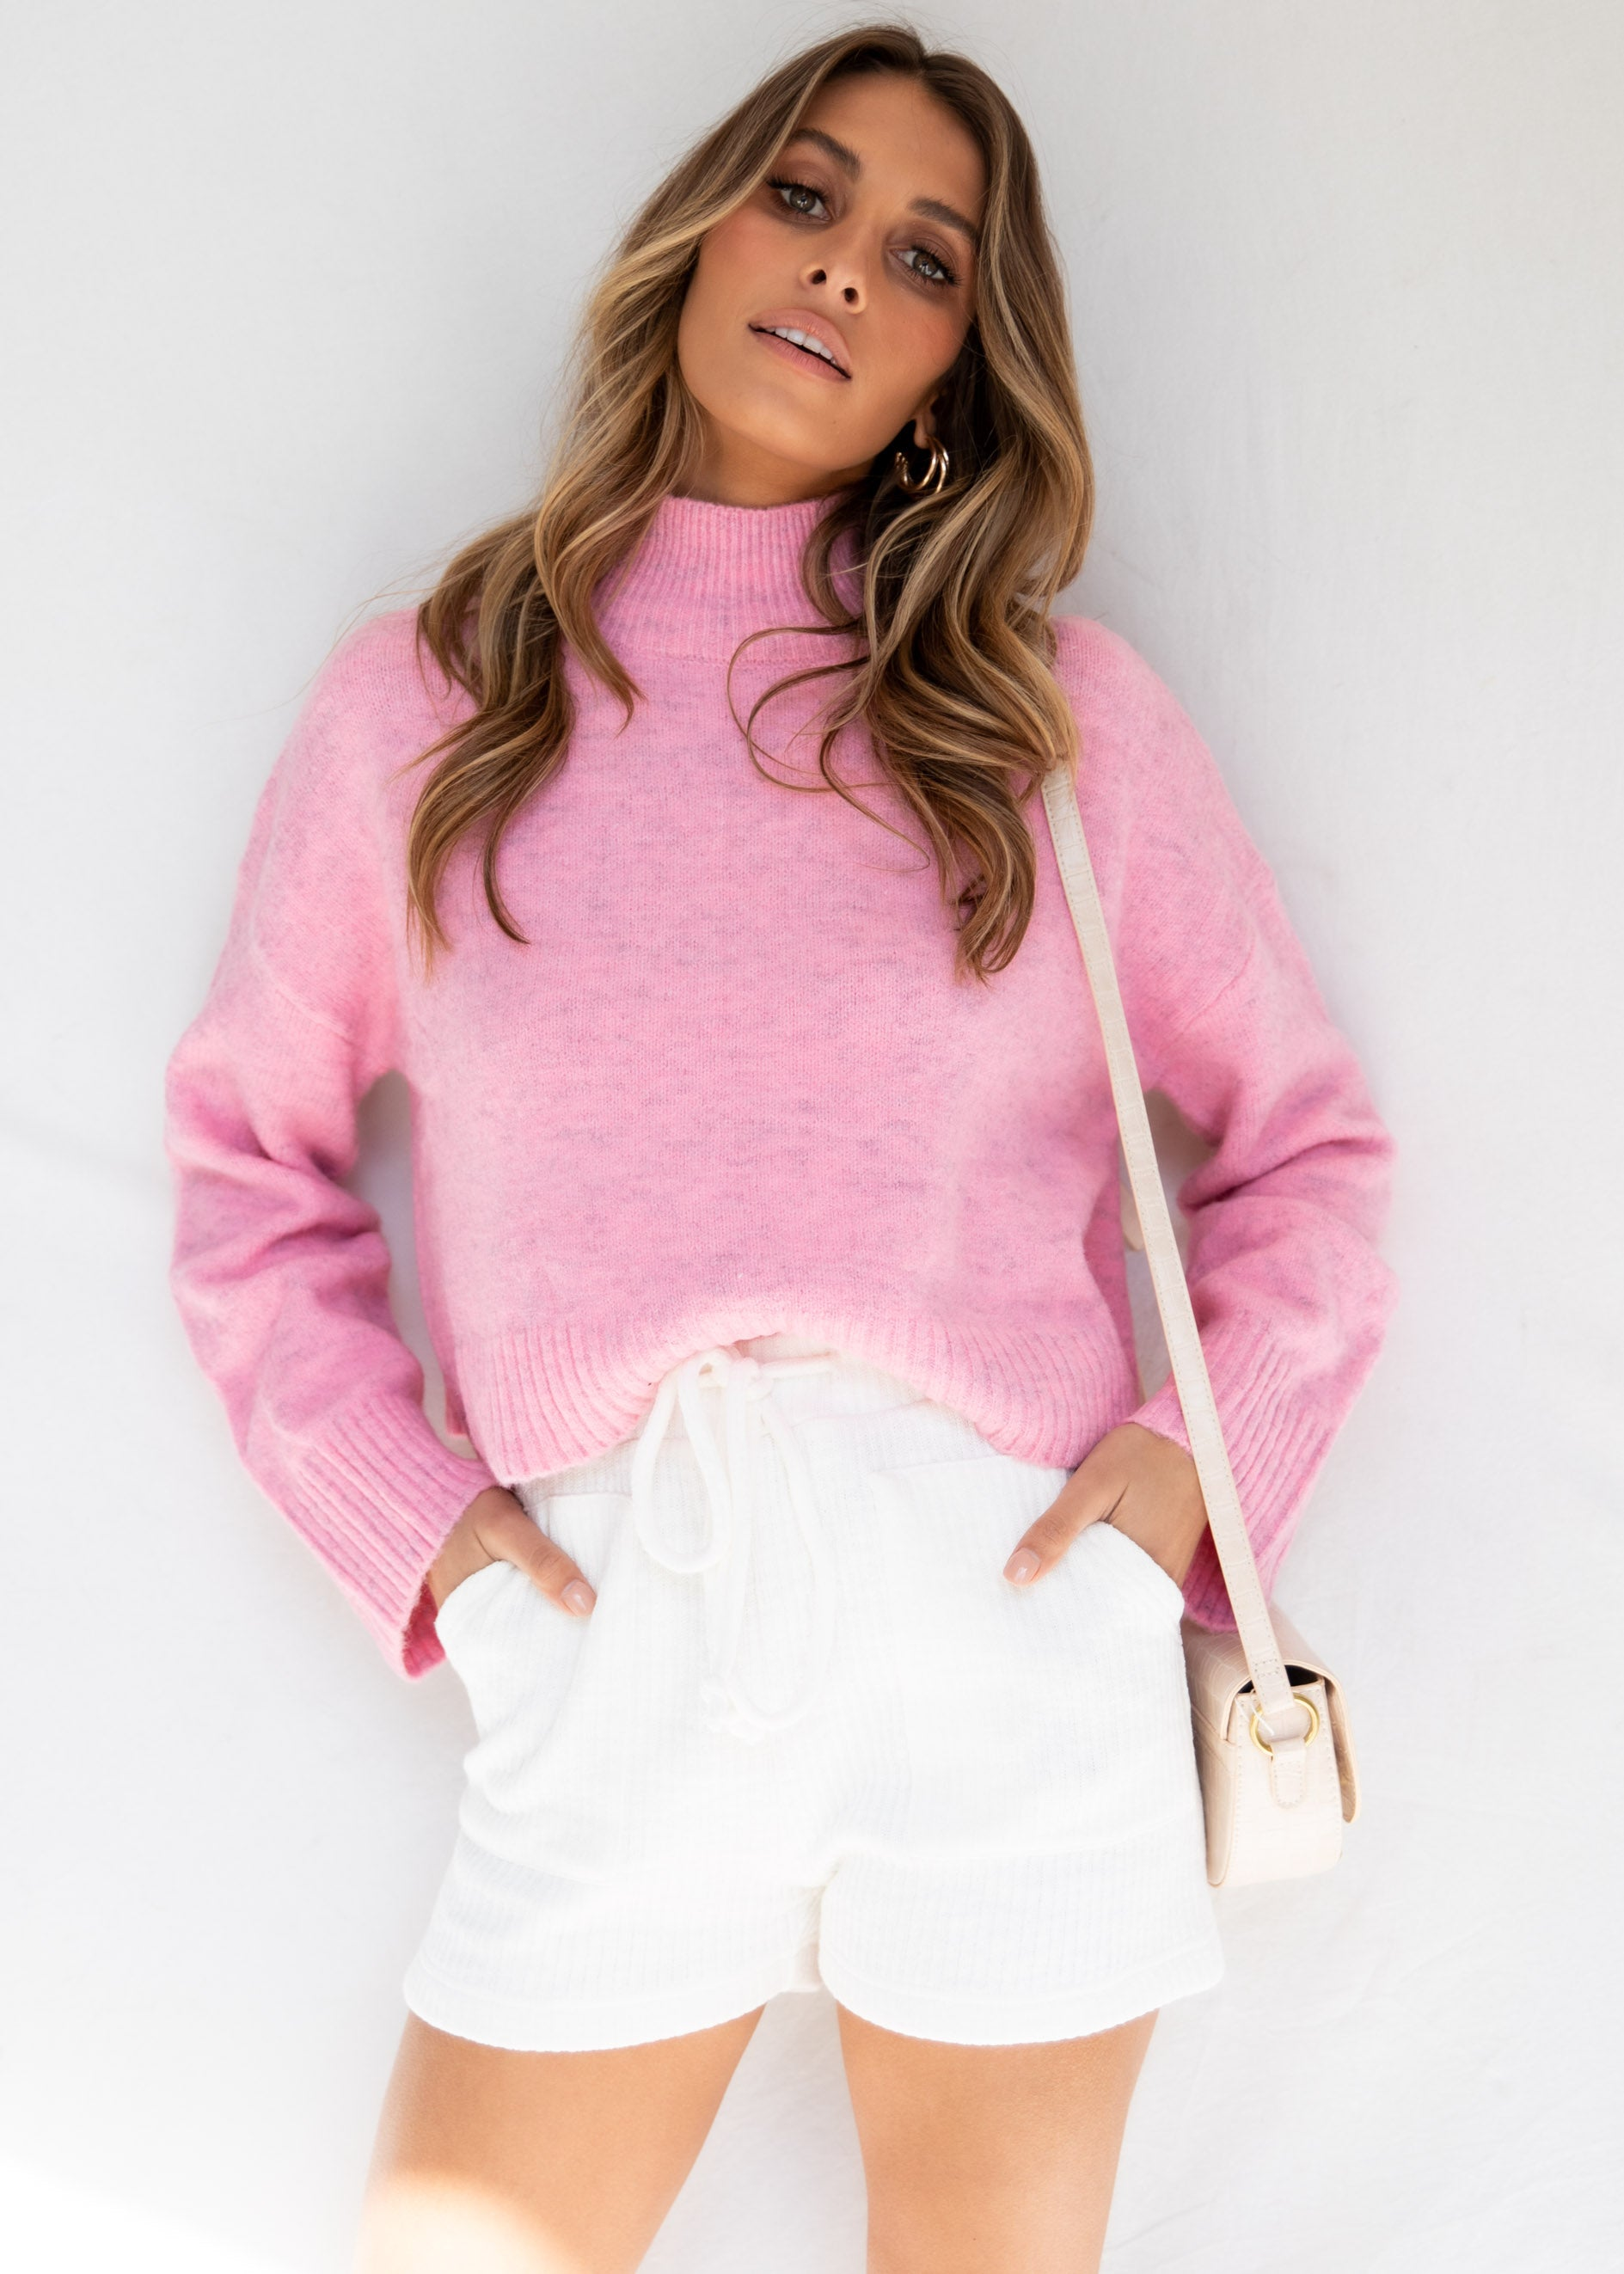 Zaria Knit Sweater - Pink